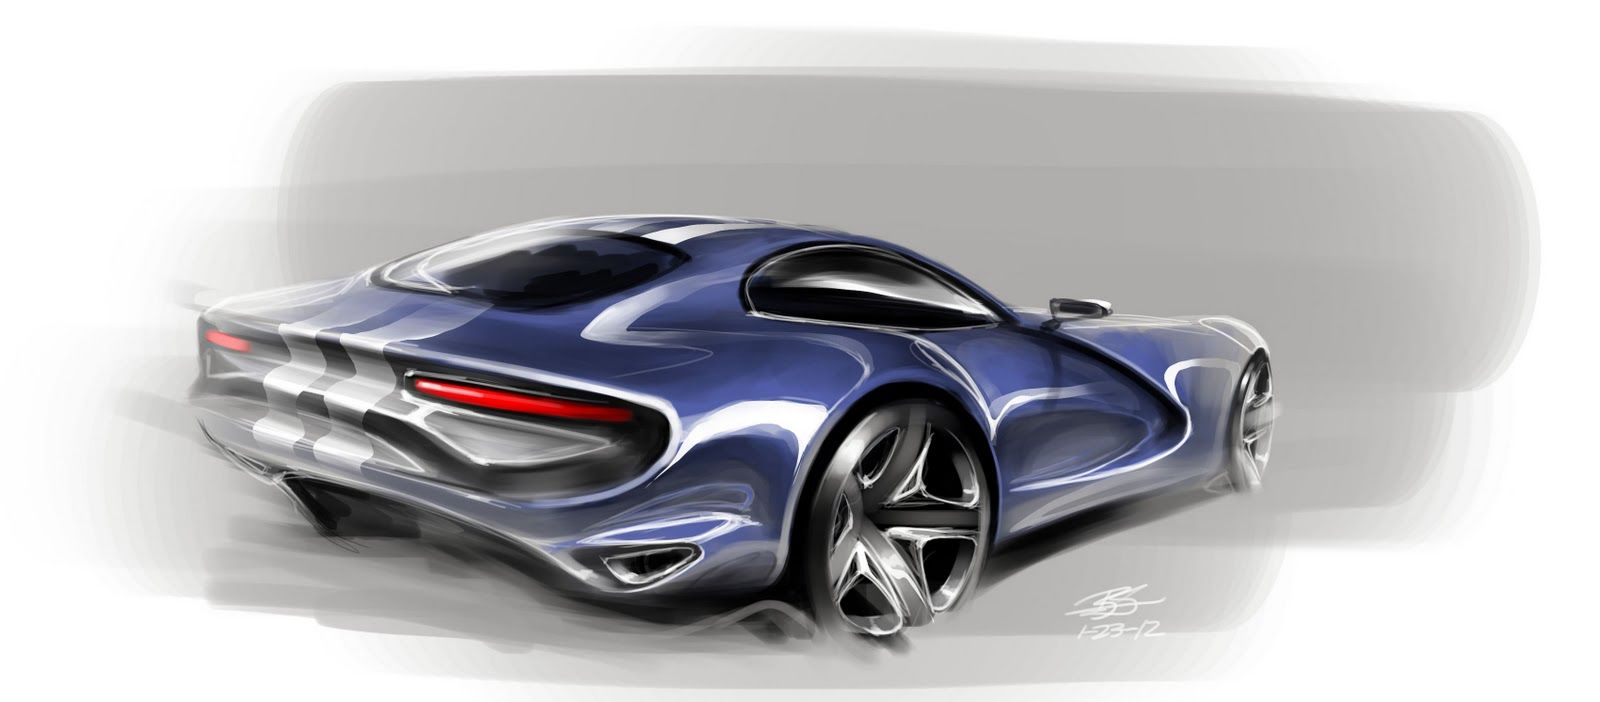 Muscle Car Concept Sketch Follow My Moto Sketches Board